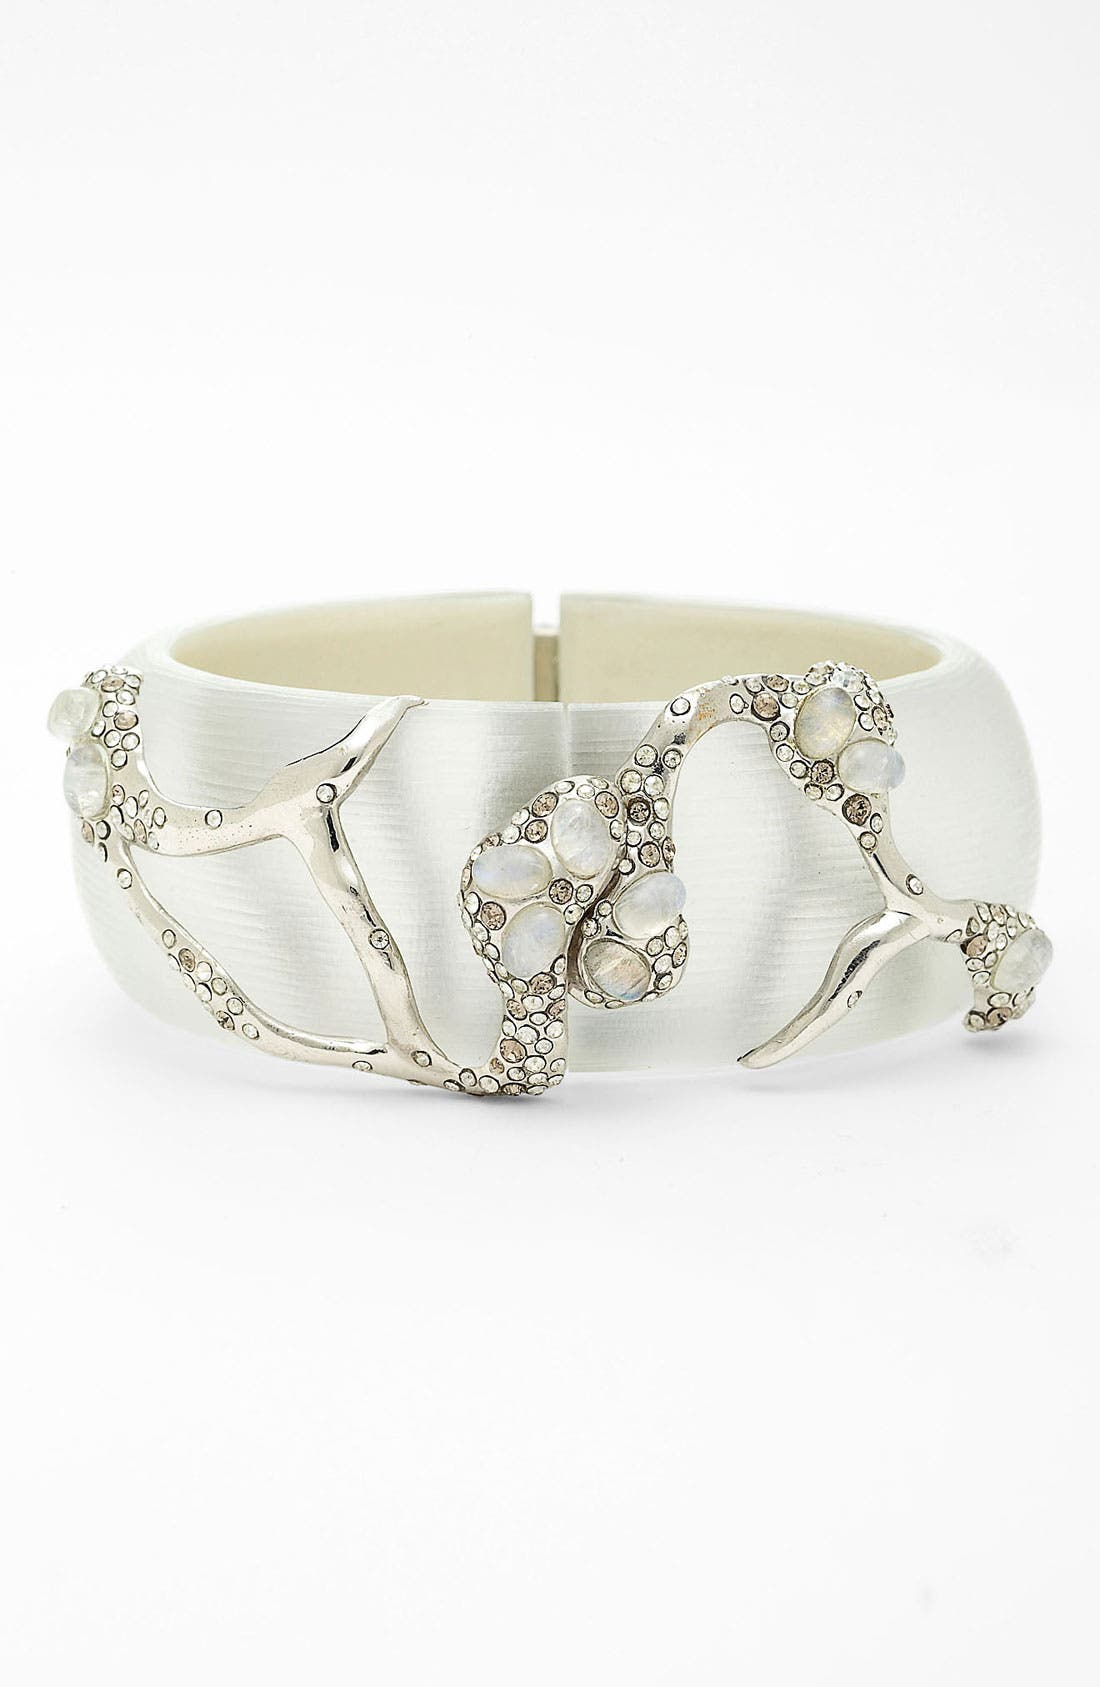 Main Image - Alexis Bittar 'Modernist - Embraced' Hinged Bracelet (Nordstrom Exclusive)